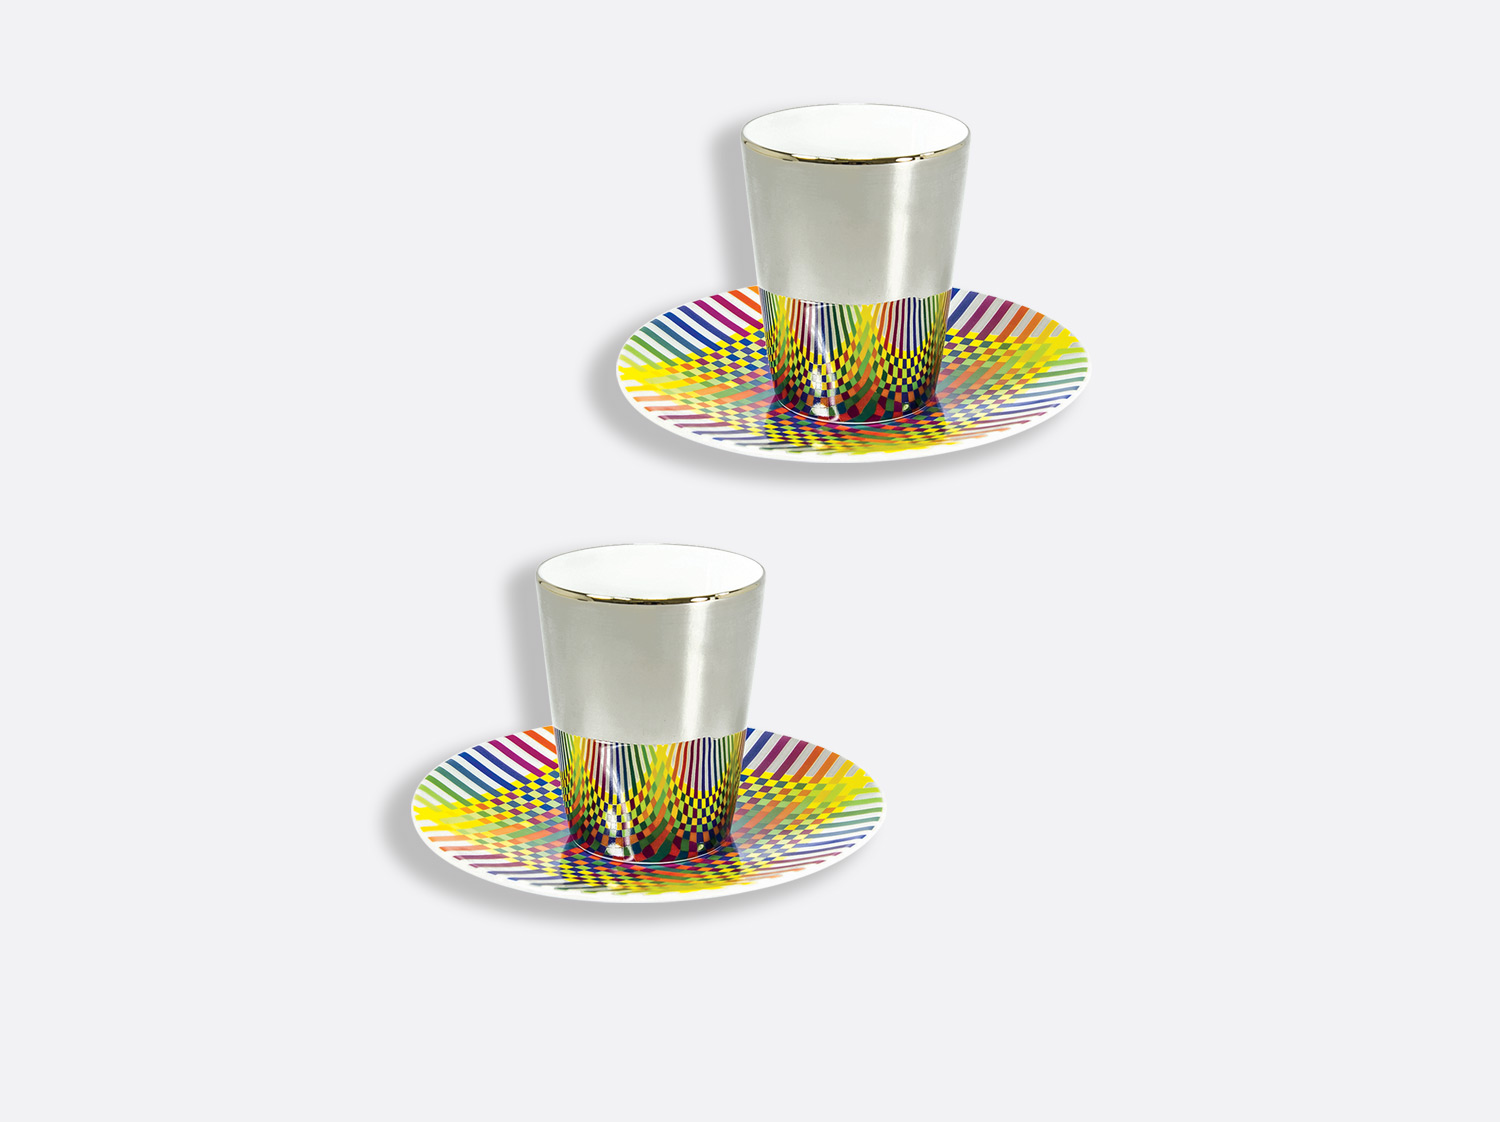 Coffret de 2 tasses platine et soucoupe café 7 cl en porcelaine de la collection Surface colorée B29 Bernardaud